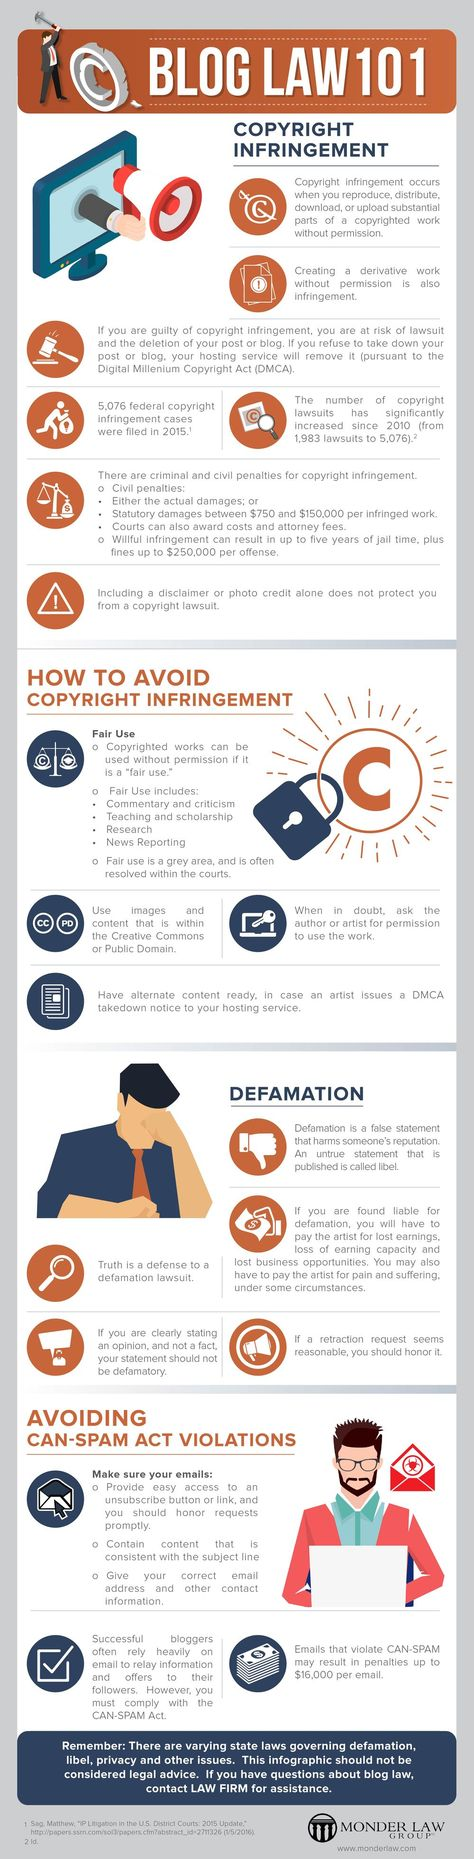 Blog Law 101 #Infographic